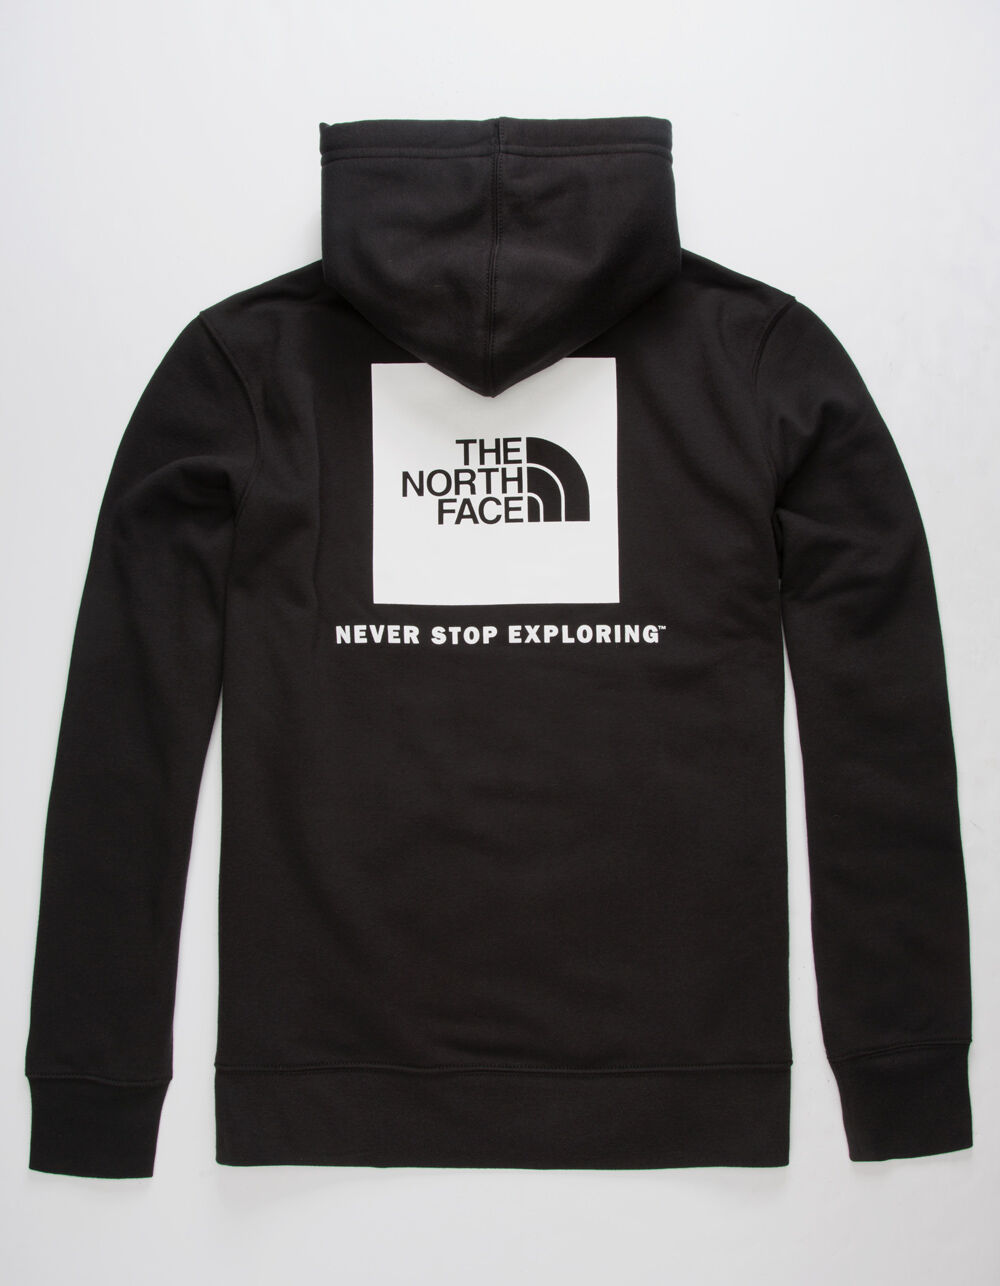 THE NORTH FACE Red Box Black Hoodie